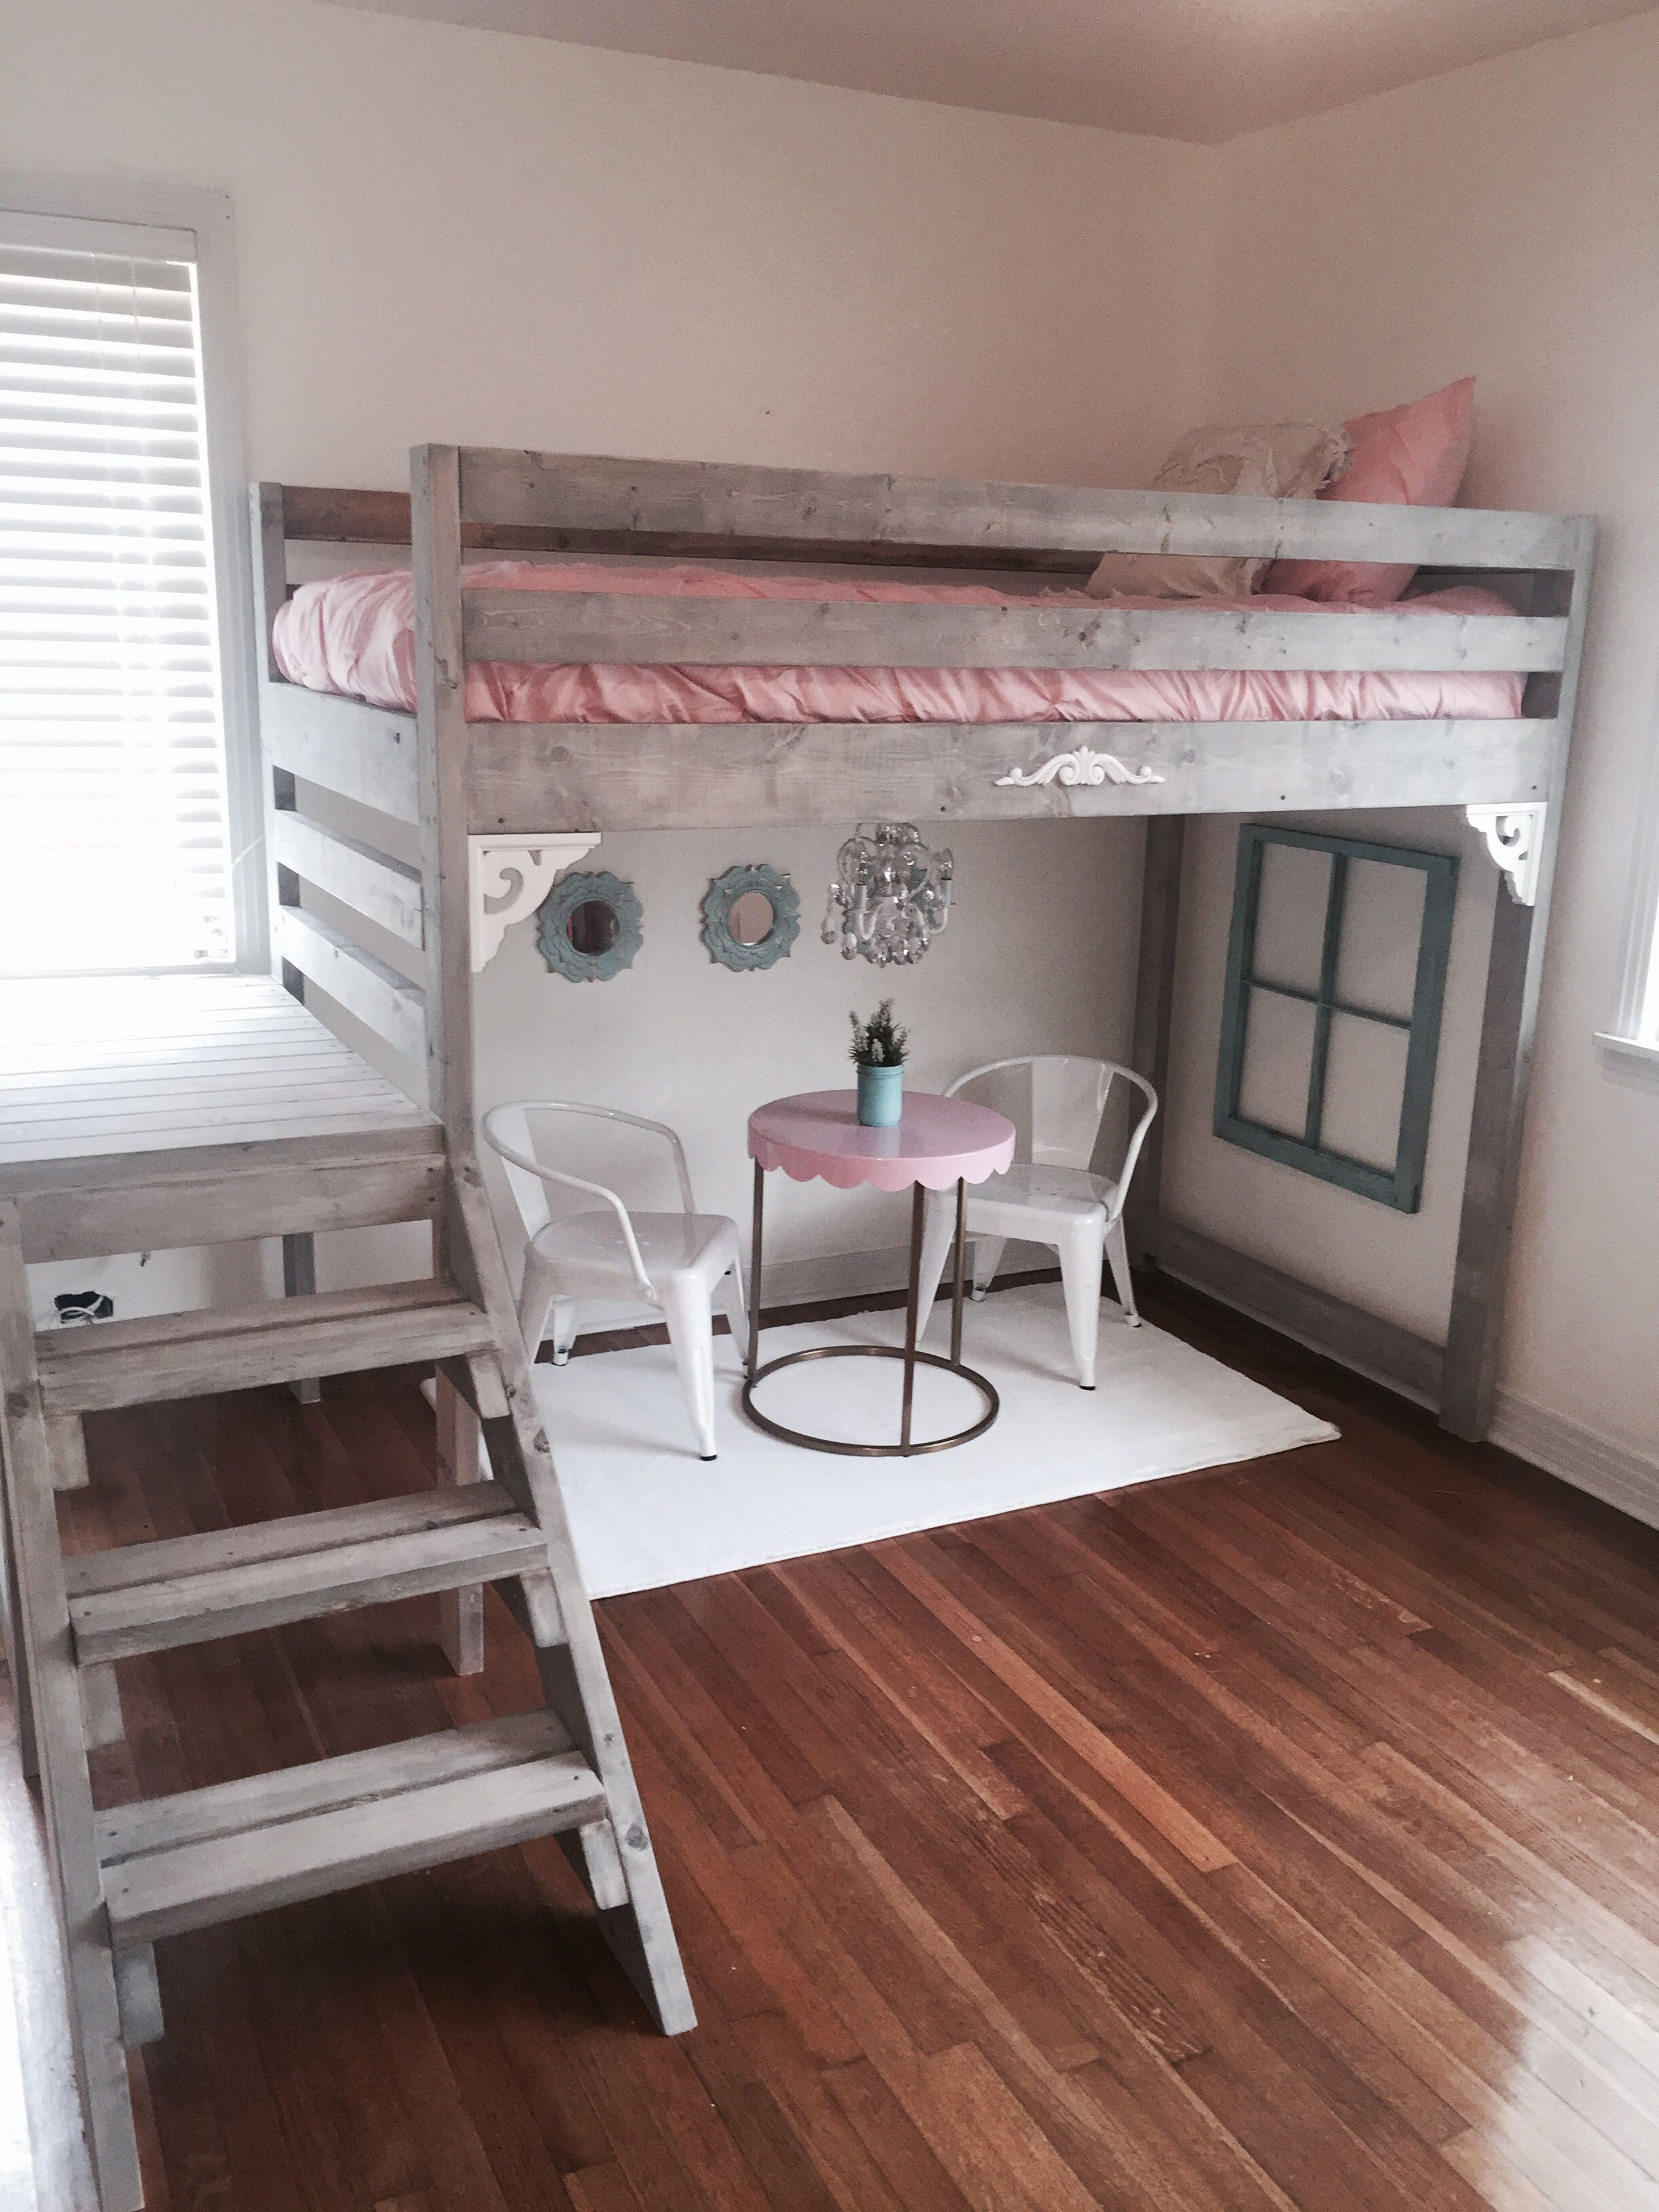 Camp Loft Bed with Stair, Junior Height Kids room design